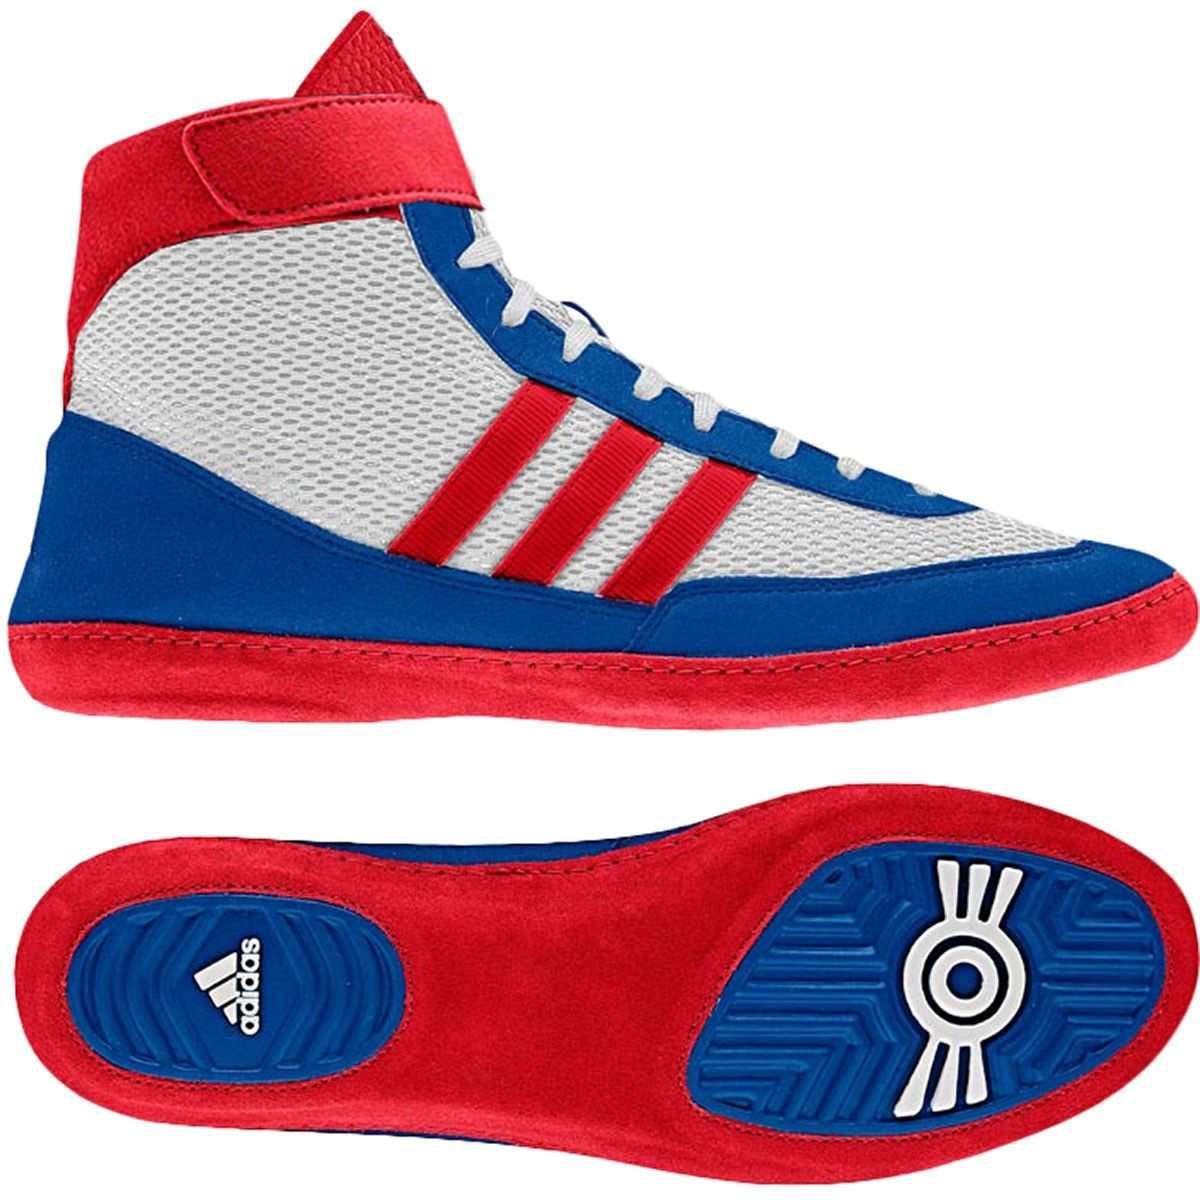 adidas Combat Speed 4 Wrestling Shoes - Running White/Colleglate Red/ Blue  Beauty-